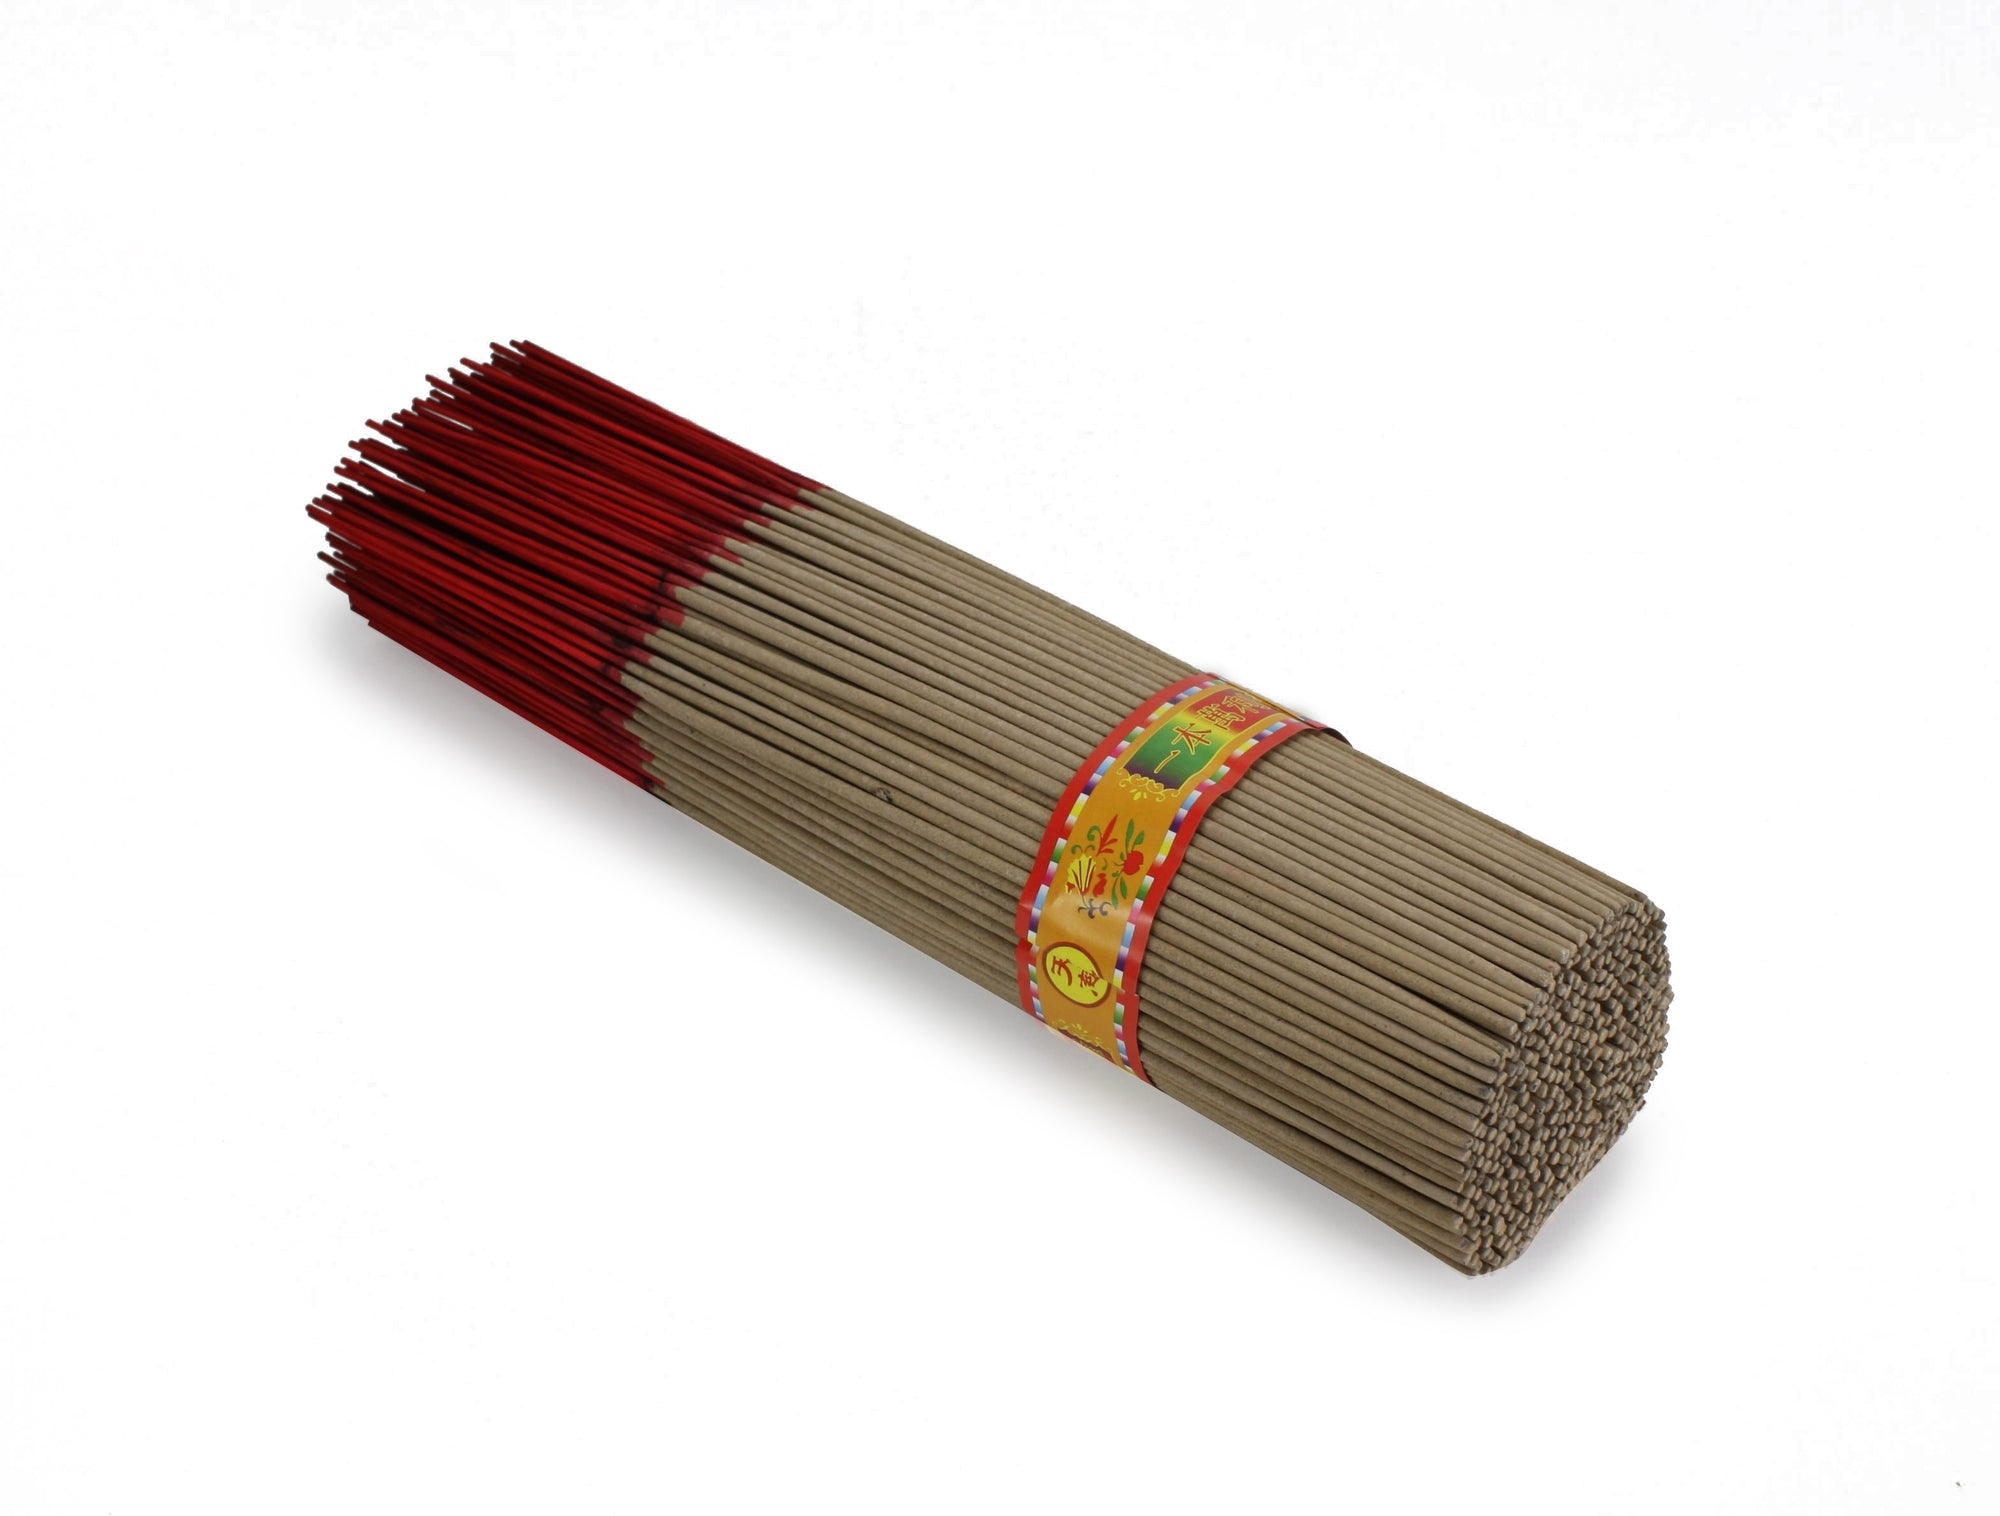 Authentic Temple Incense - No added fragrance - large 800g pack. c. 470 sticks. - farangshop-co